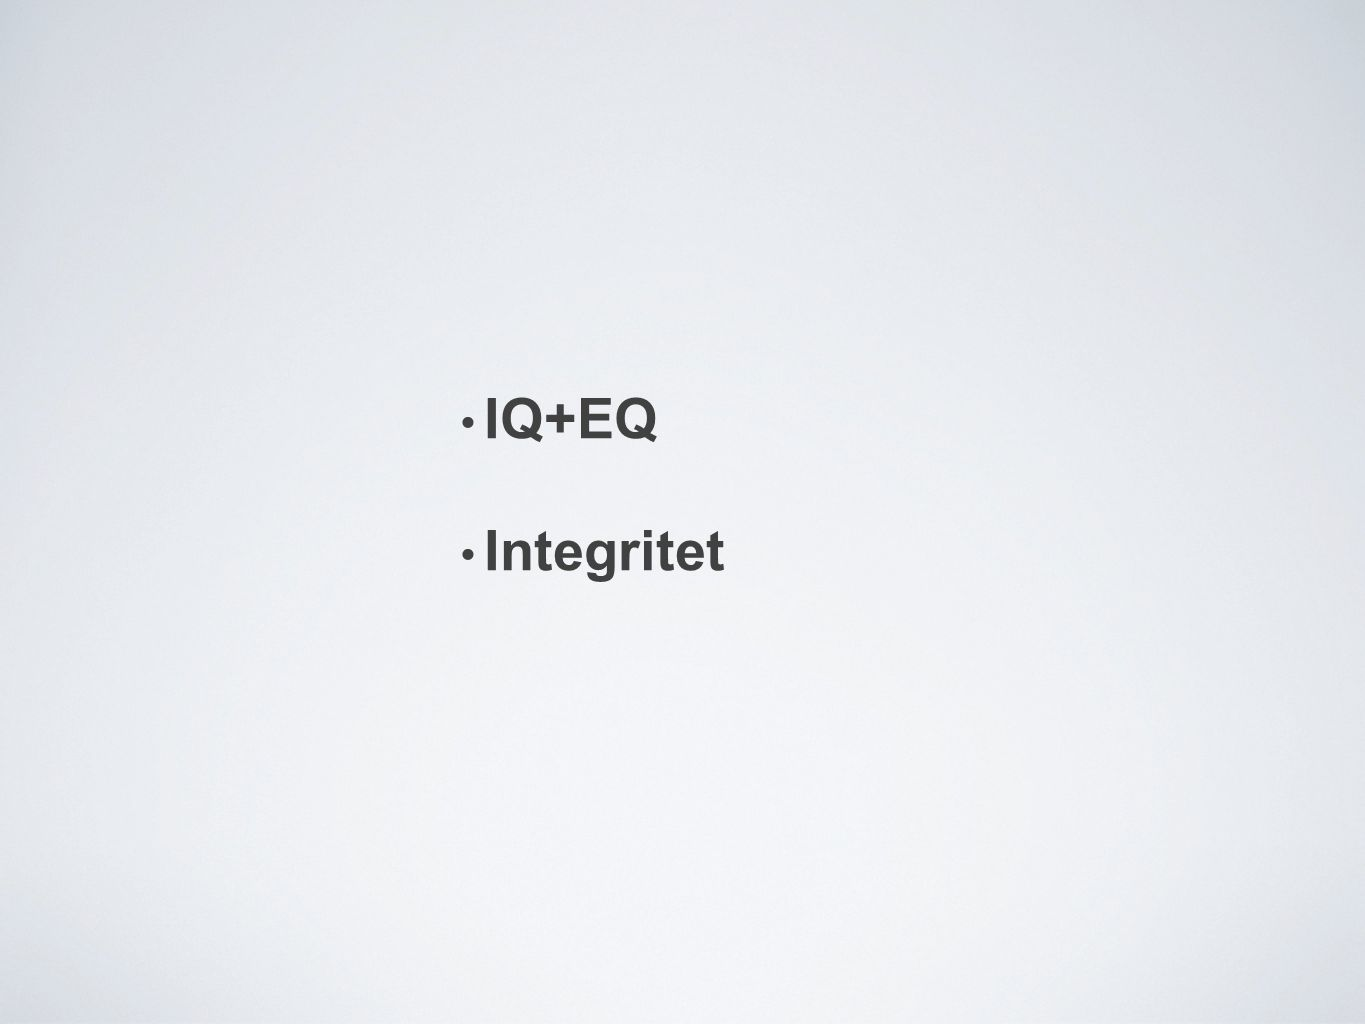 IQ+EQ Integritet